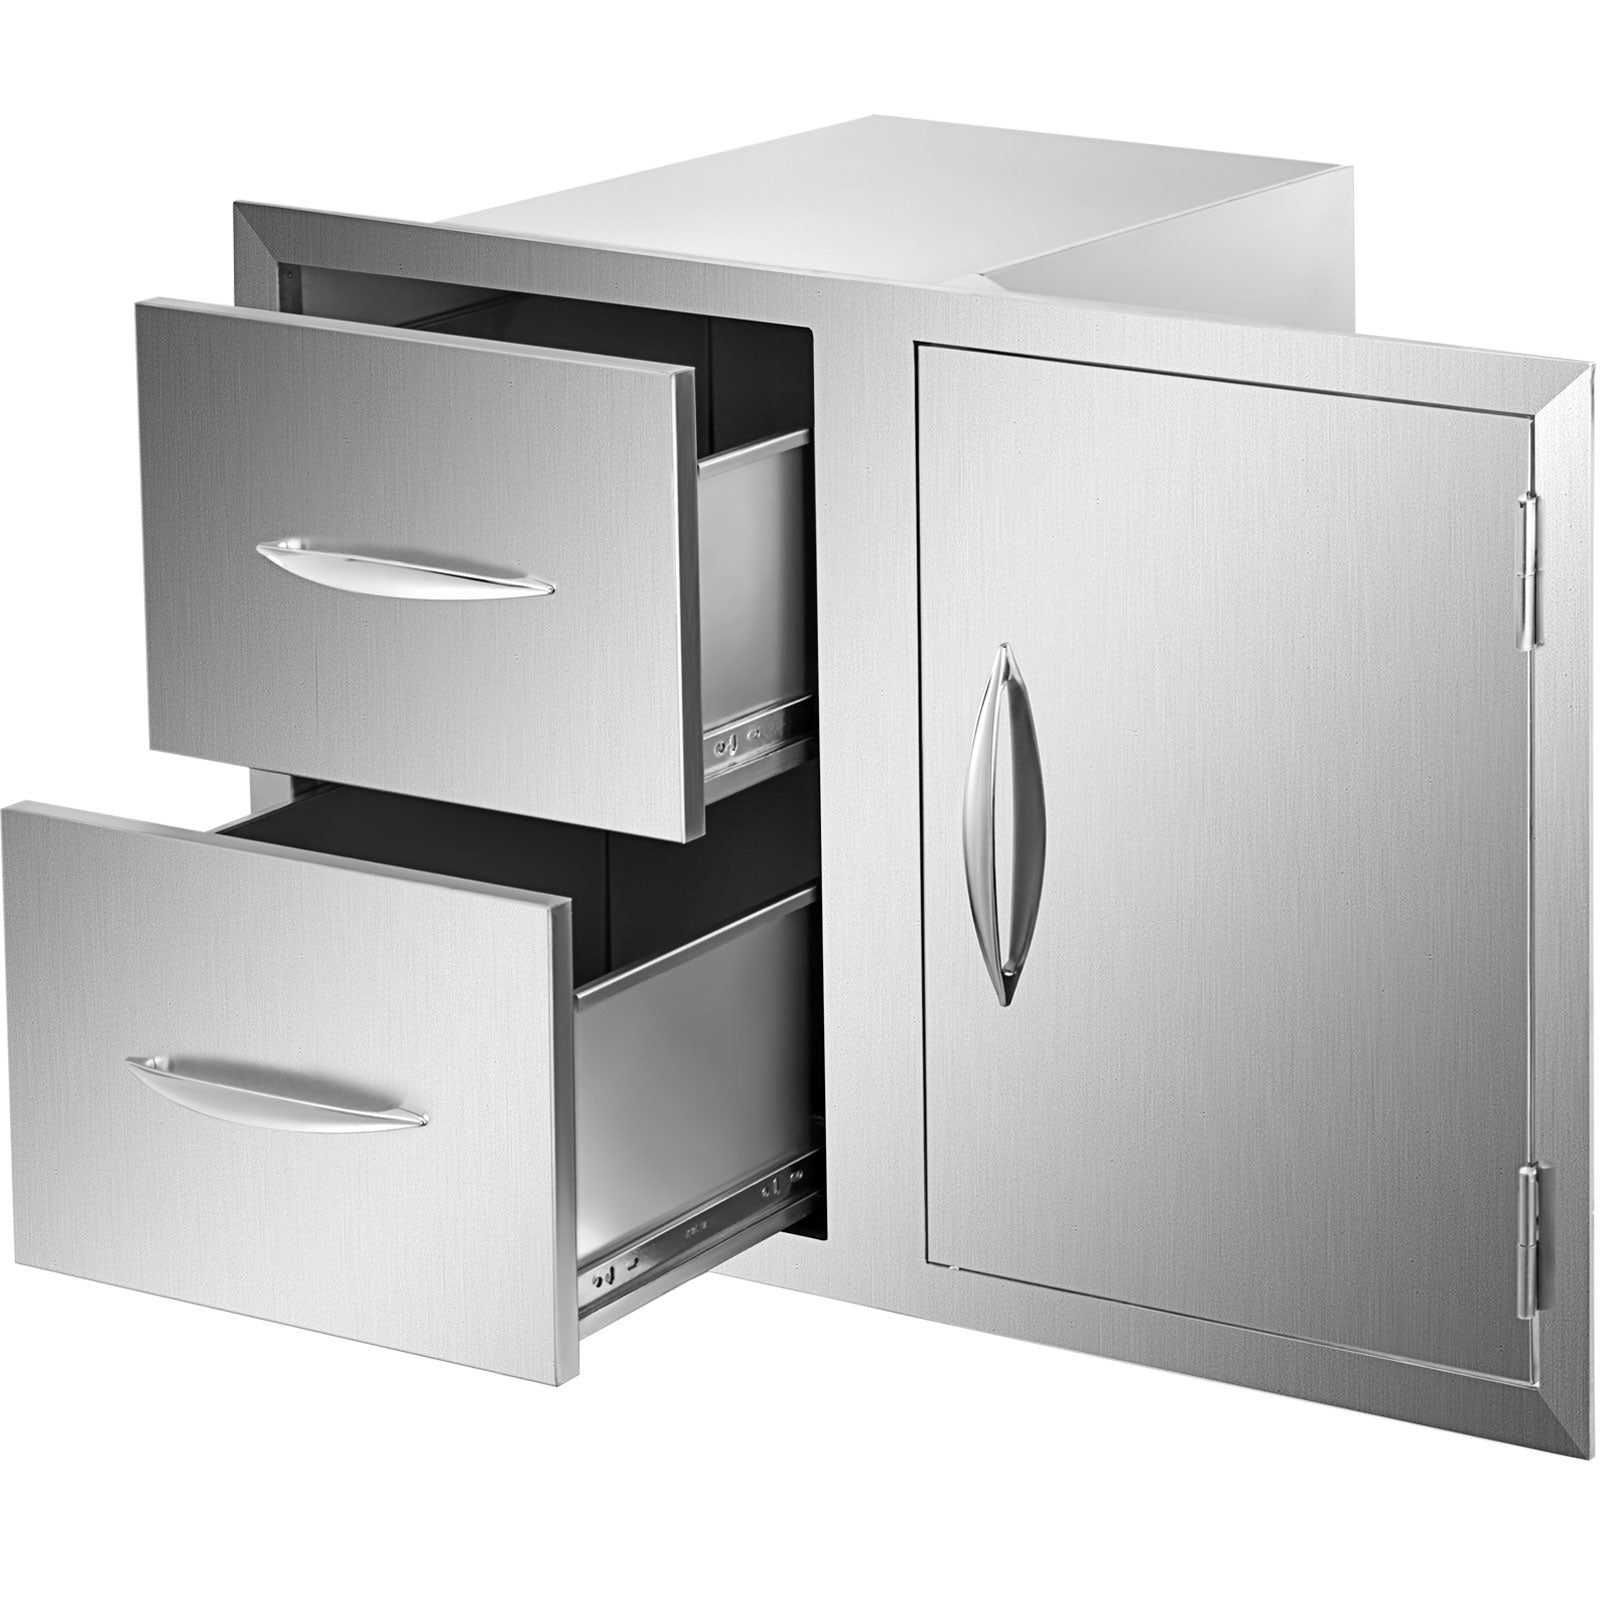 Porte D'accès Cuisine Inox Bbq Access Doors Chest Of Drawers Kitchen Cabinet